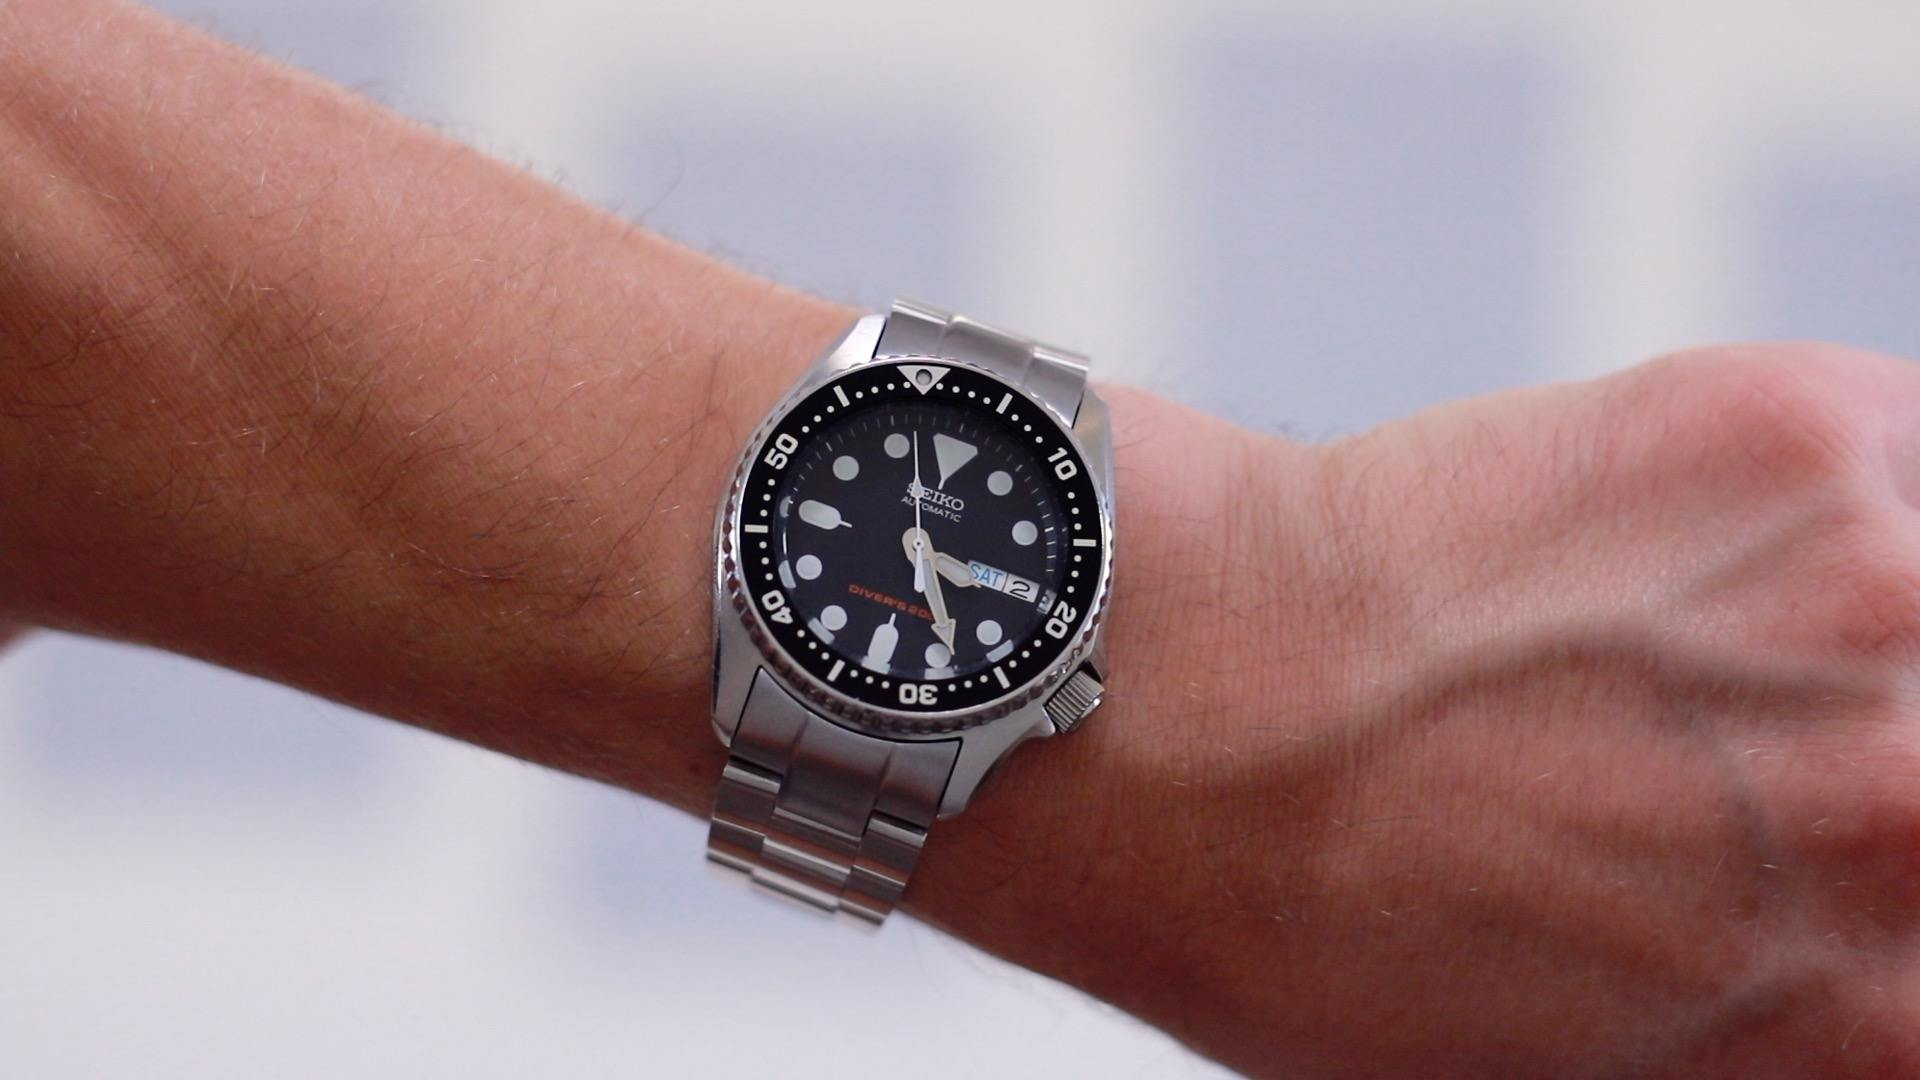 Seiko Skx013 Review The Best Small Dive Watch